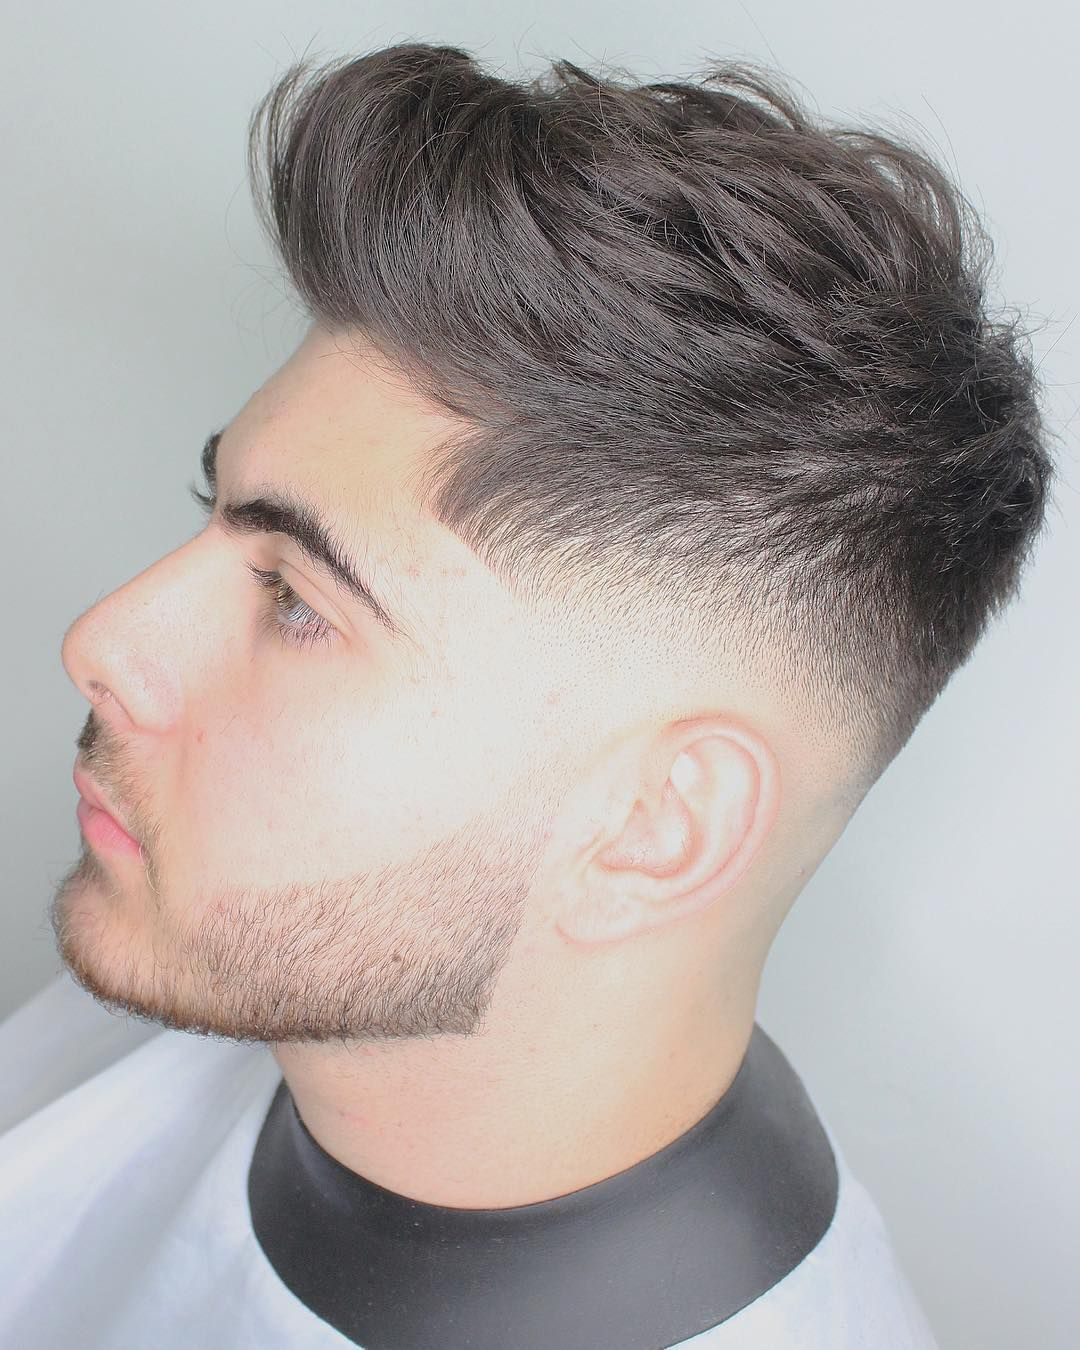 Mens professional haircuts  best mens hairstyles  created by the worlds best barbers